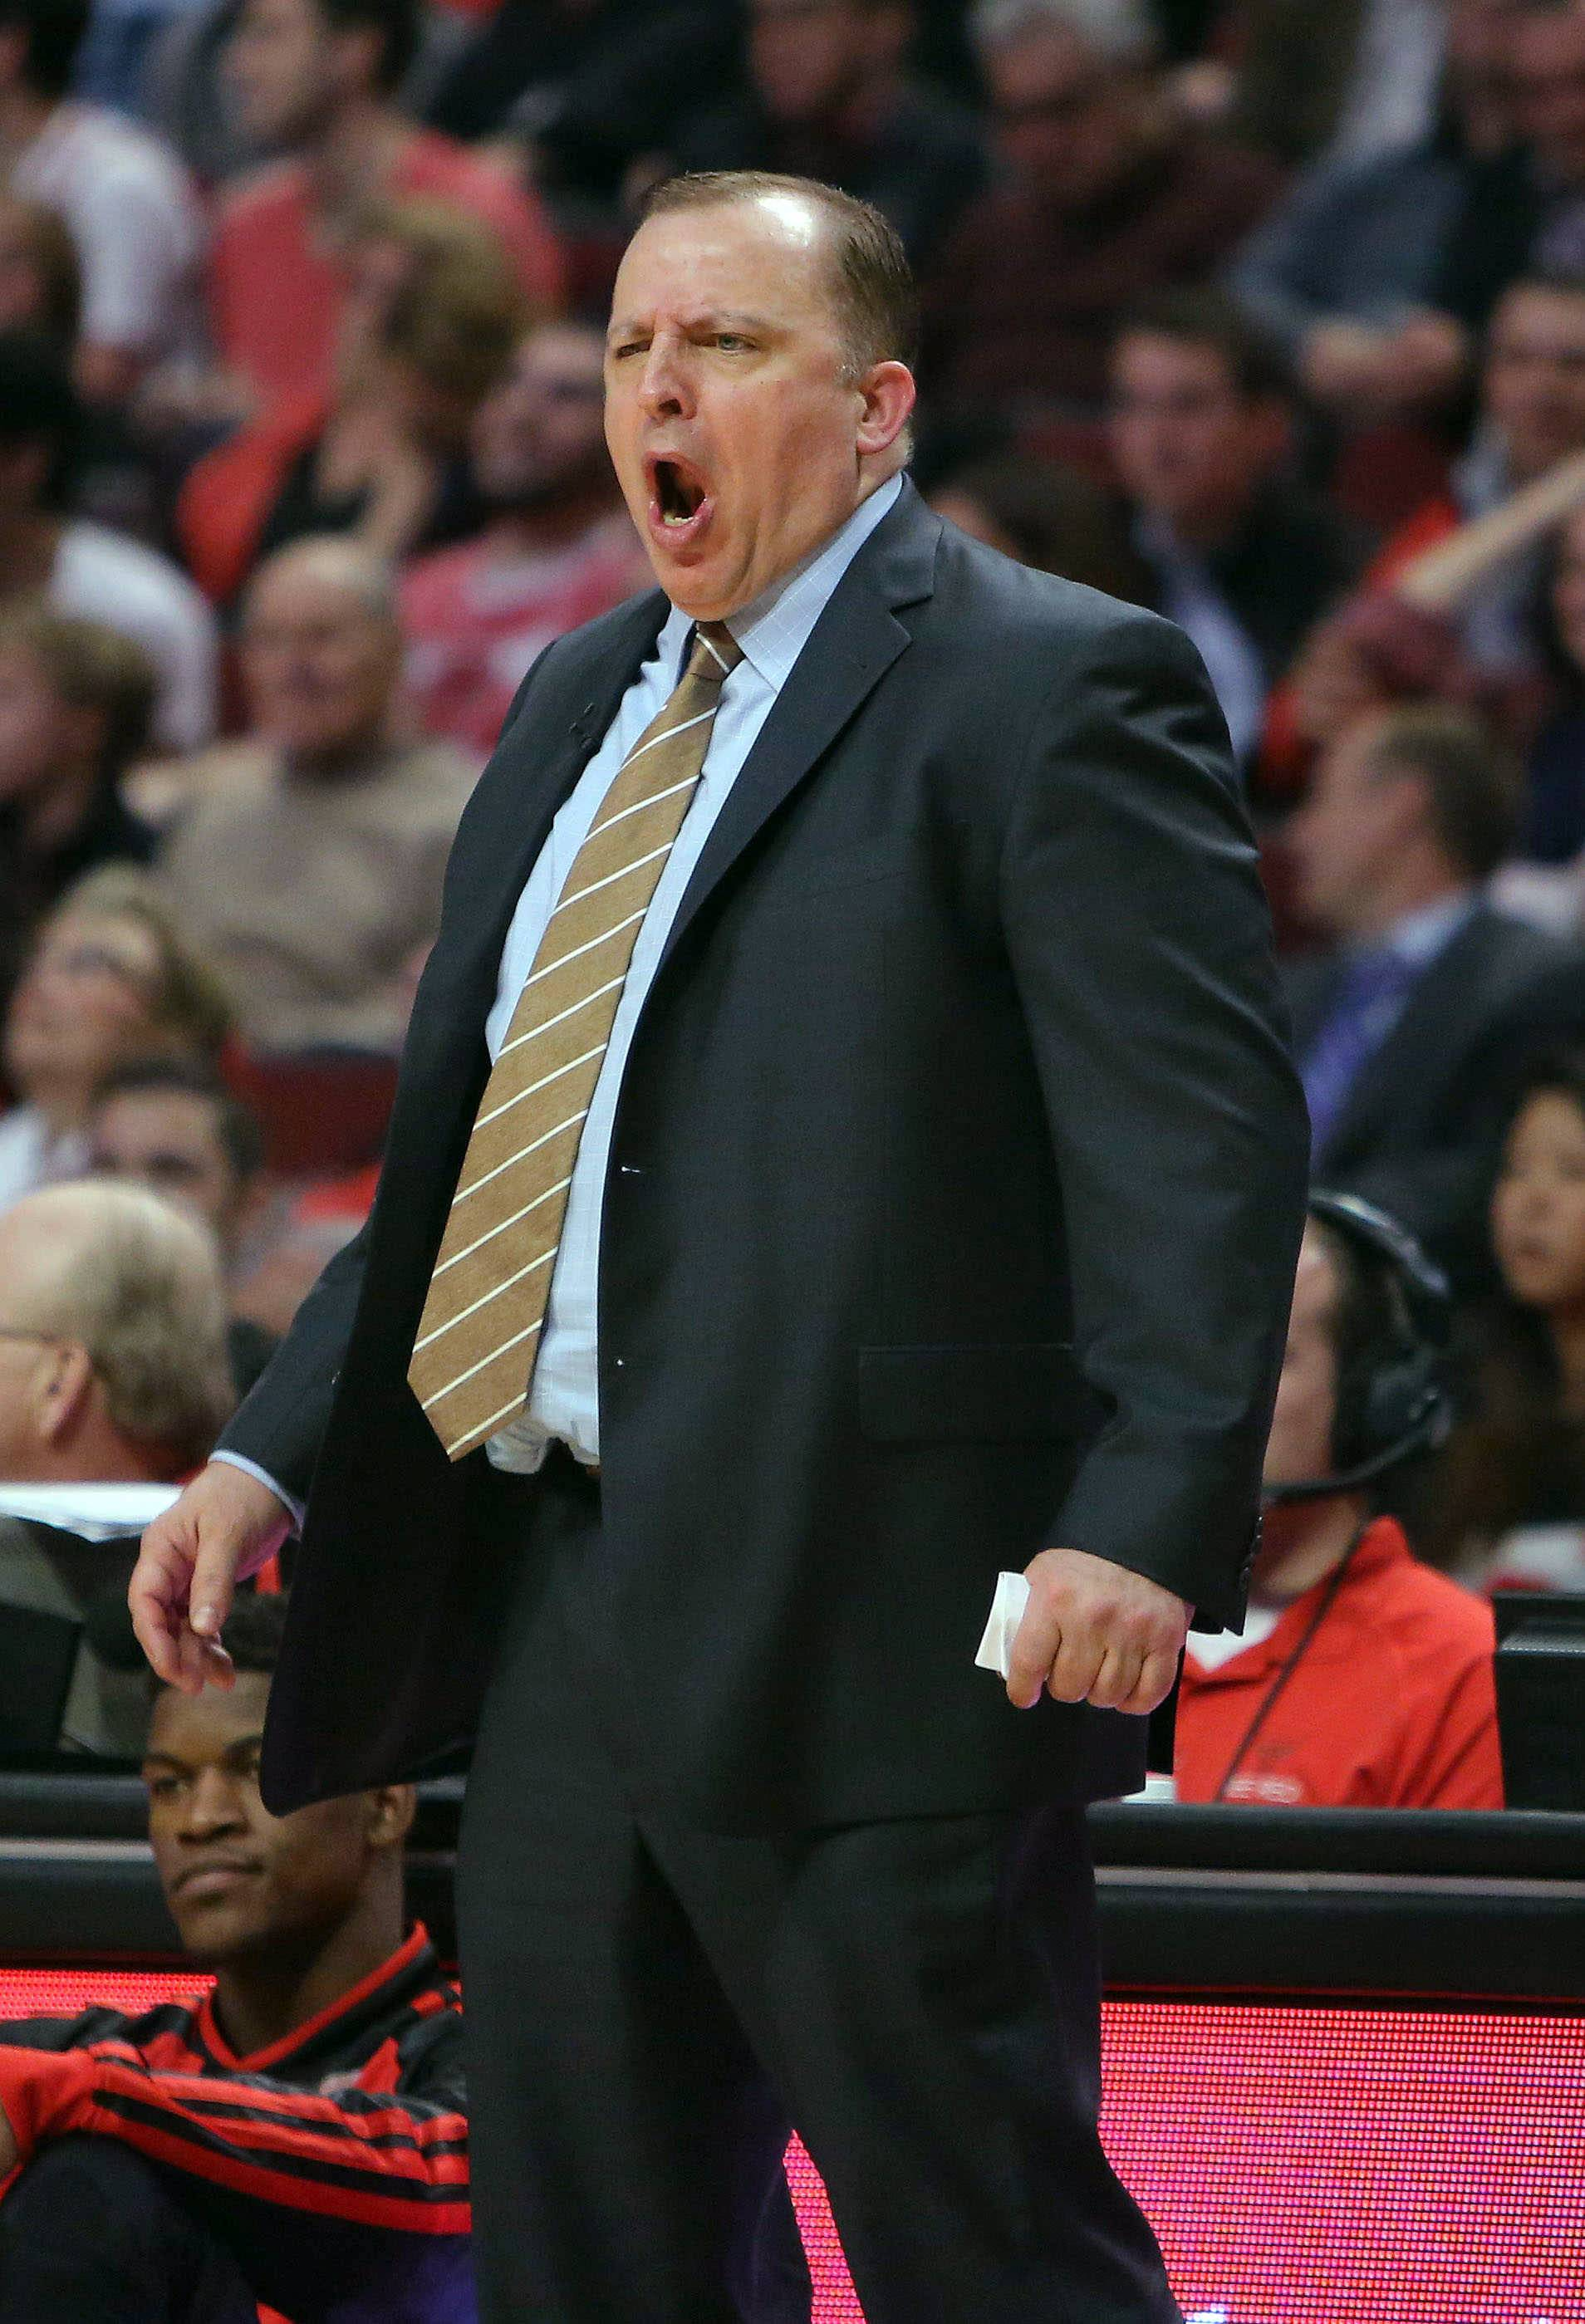 Chicago Bulls coach Tom Thibodeau shouts during Game 5 of the Bulls' NBA basketball first-round playoff series against the Washington Wizards, Tuesday, April 29, 2014, in Chicago. The Wizards won 75-69, taking the series. (AP Photo/Daily Herald, Steve Lundy) MANDATORY CREDIT  MAGS OUT